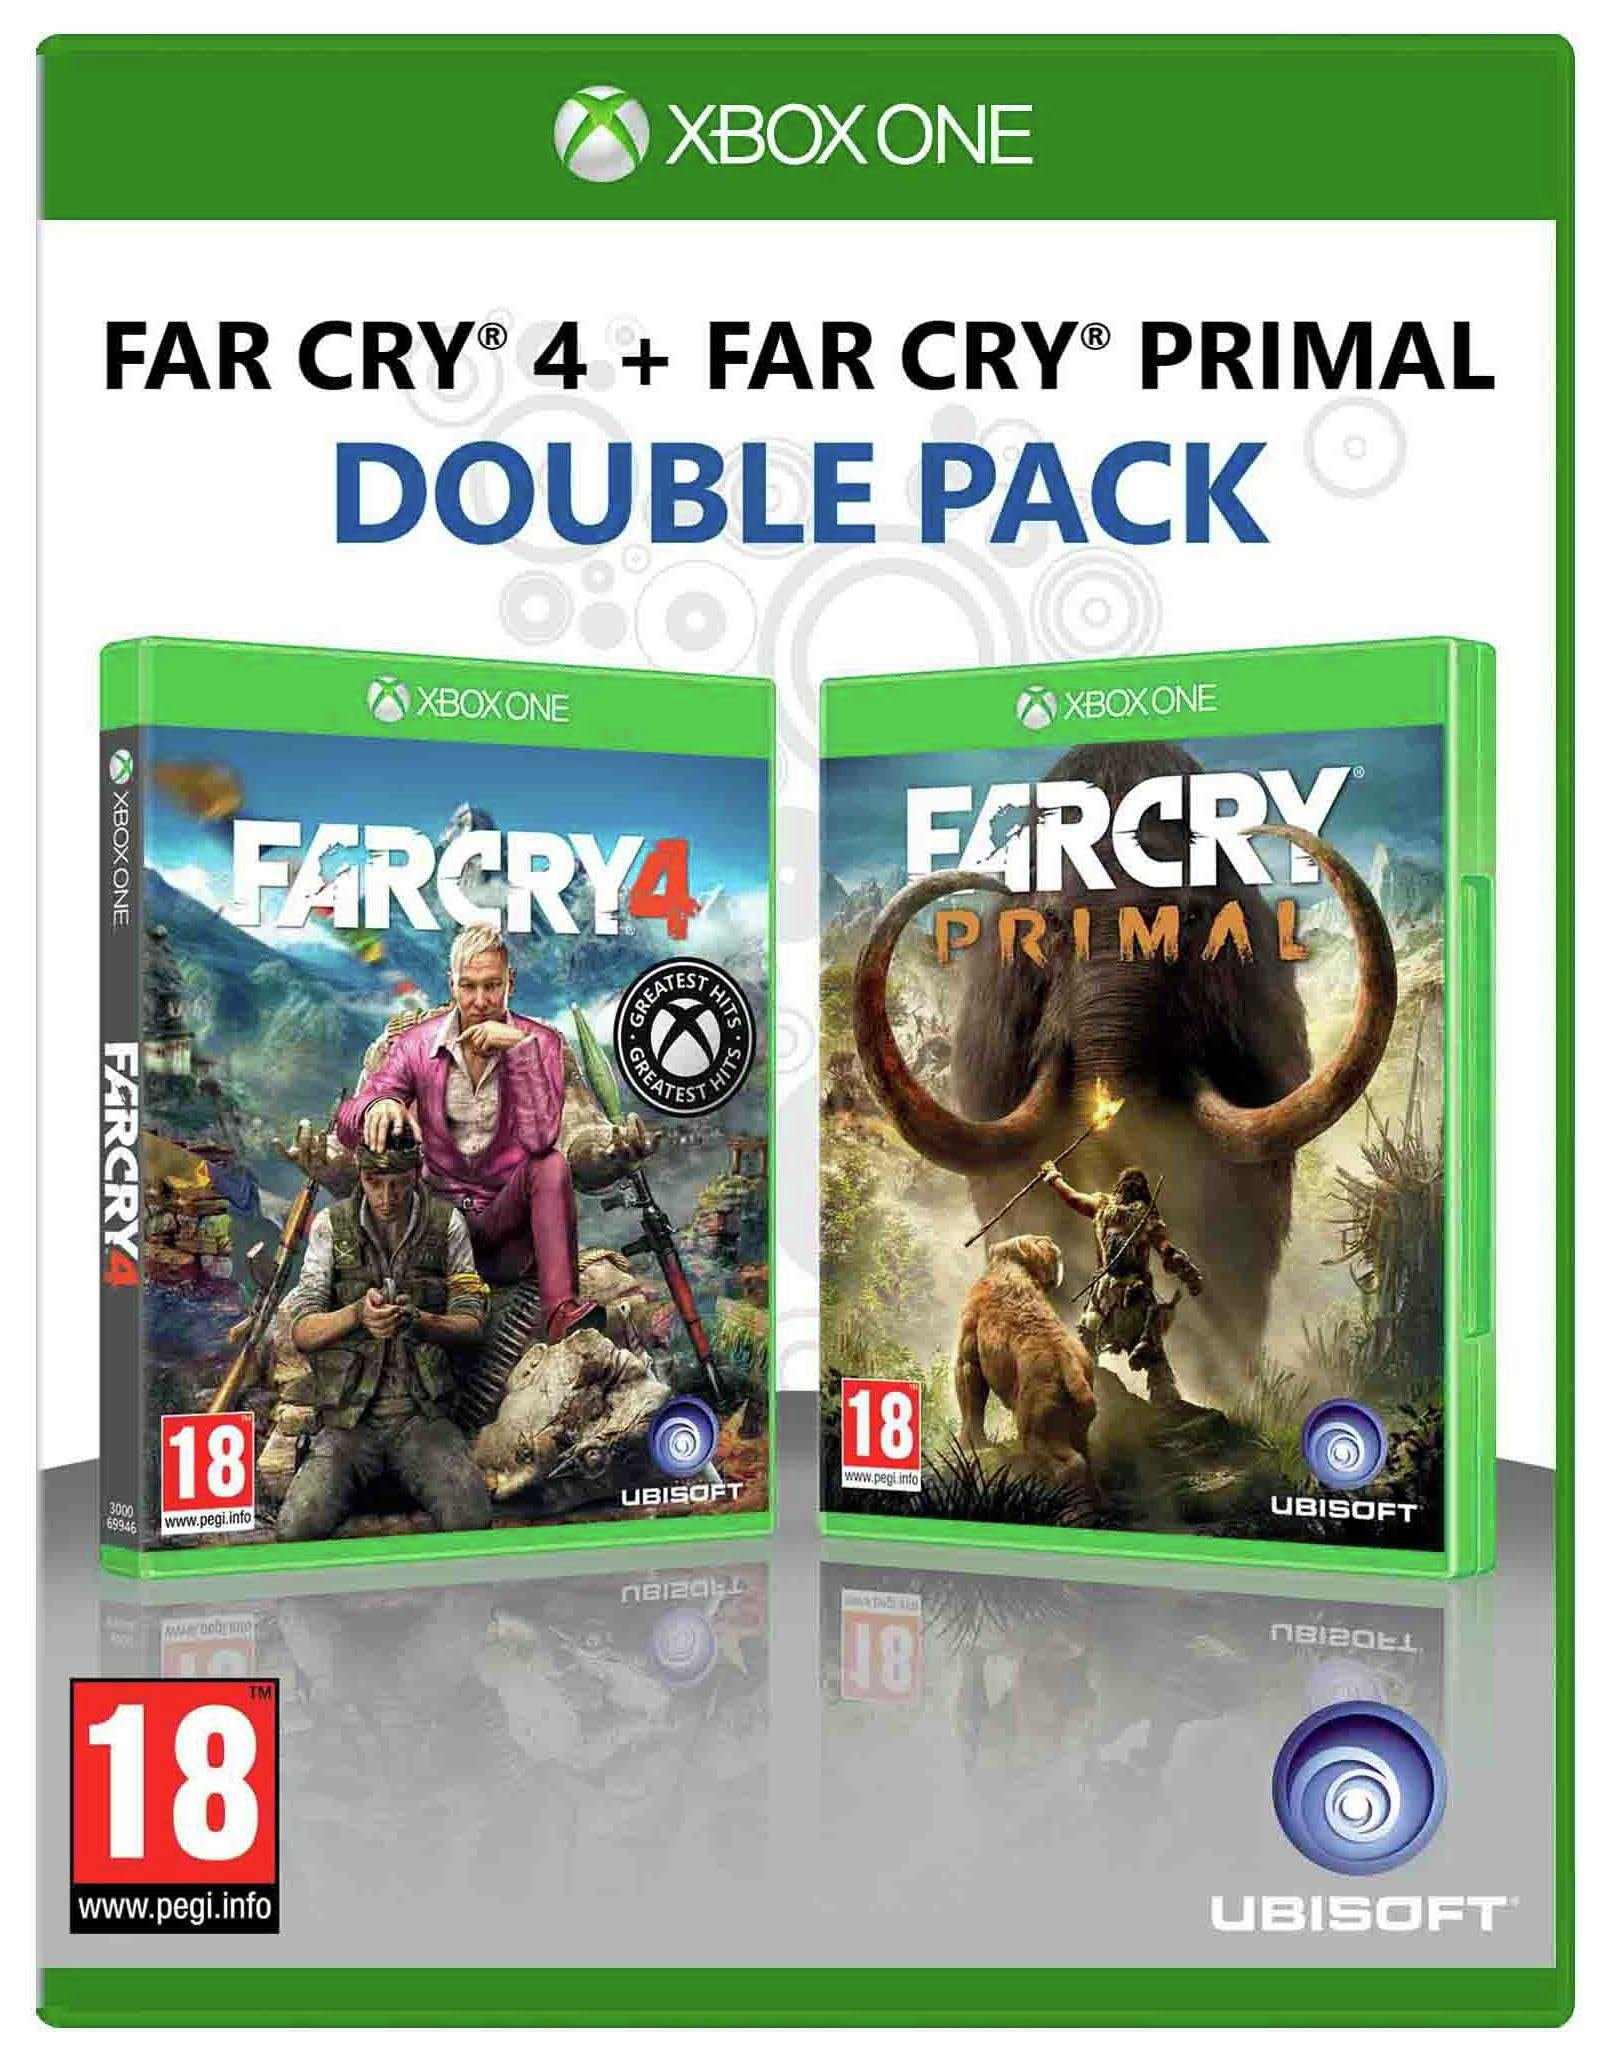 Image of Far Cry - Primal and Far Cry 4 - Xbox - One Pre-Order Games.